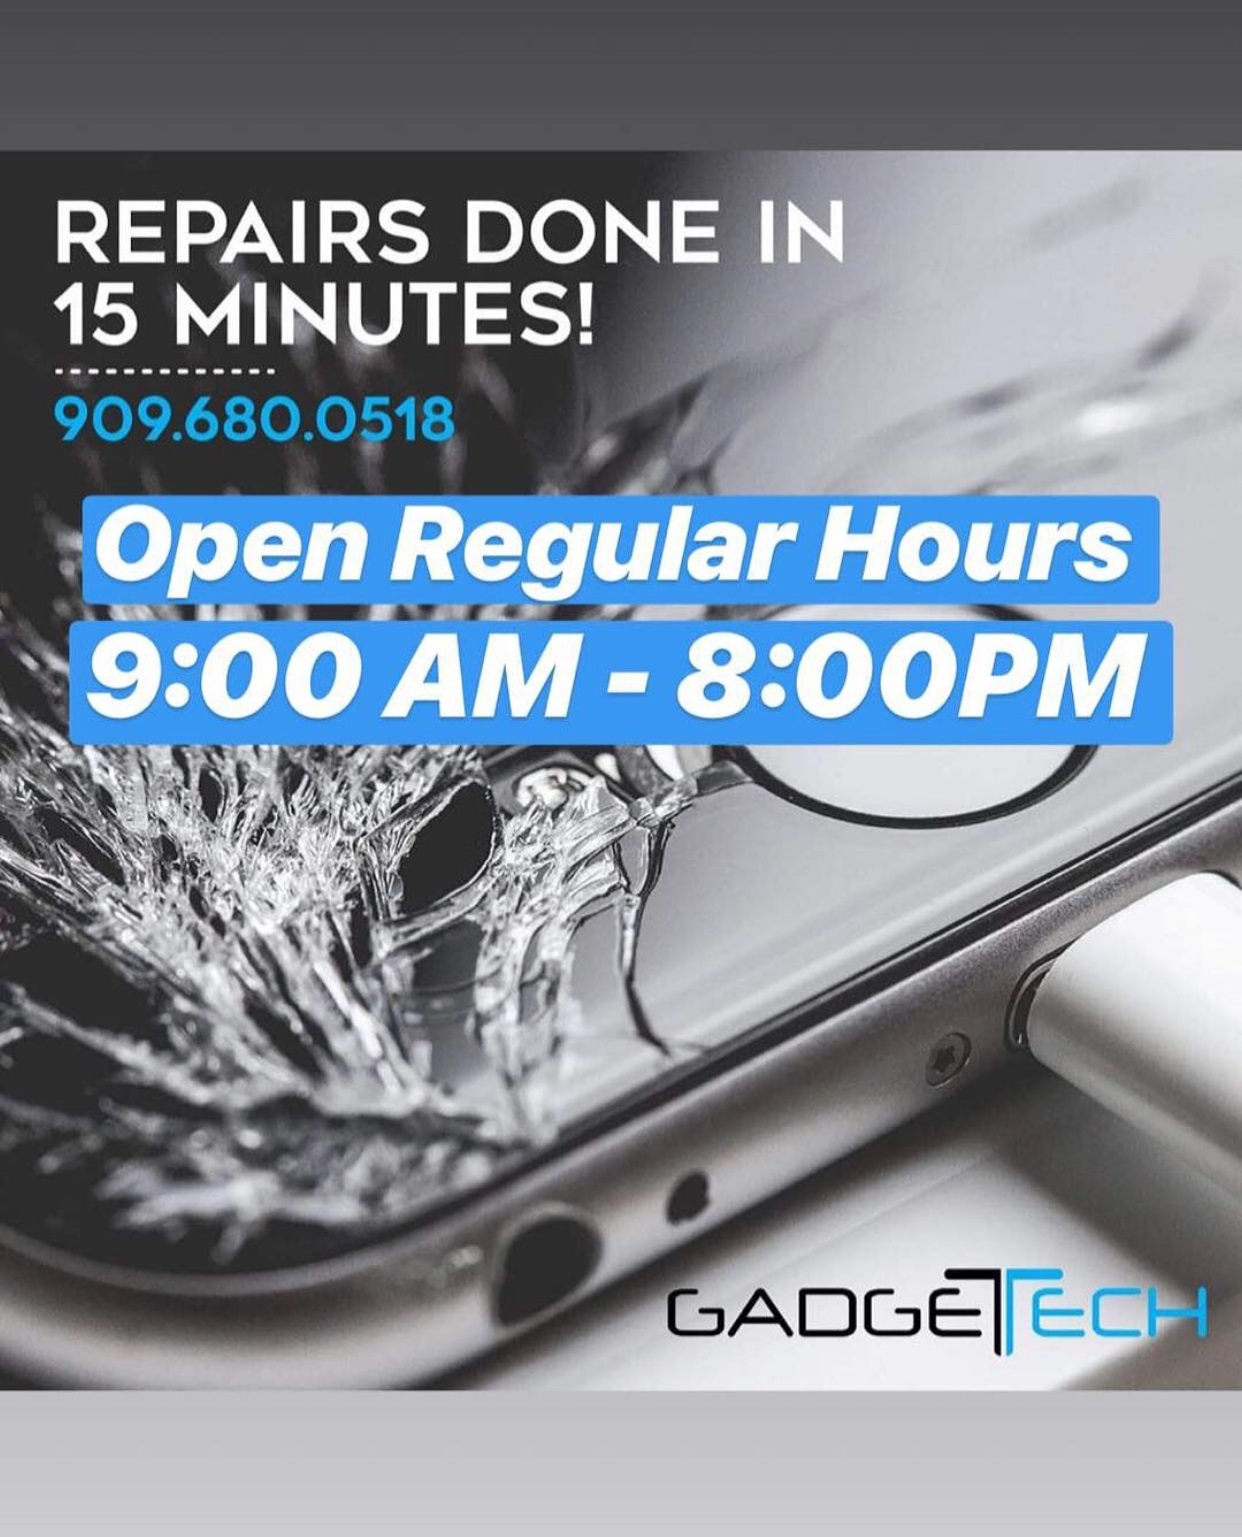 iPhone, Samsung, LG Screen and Battery Repairs and More!